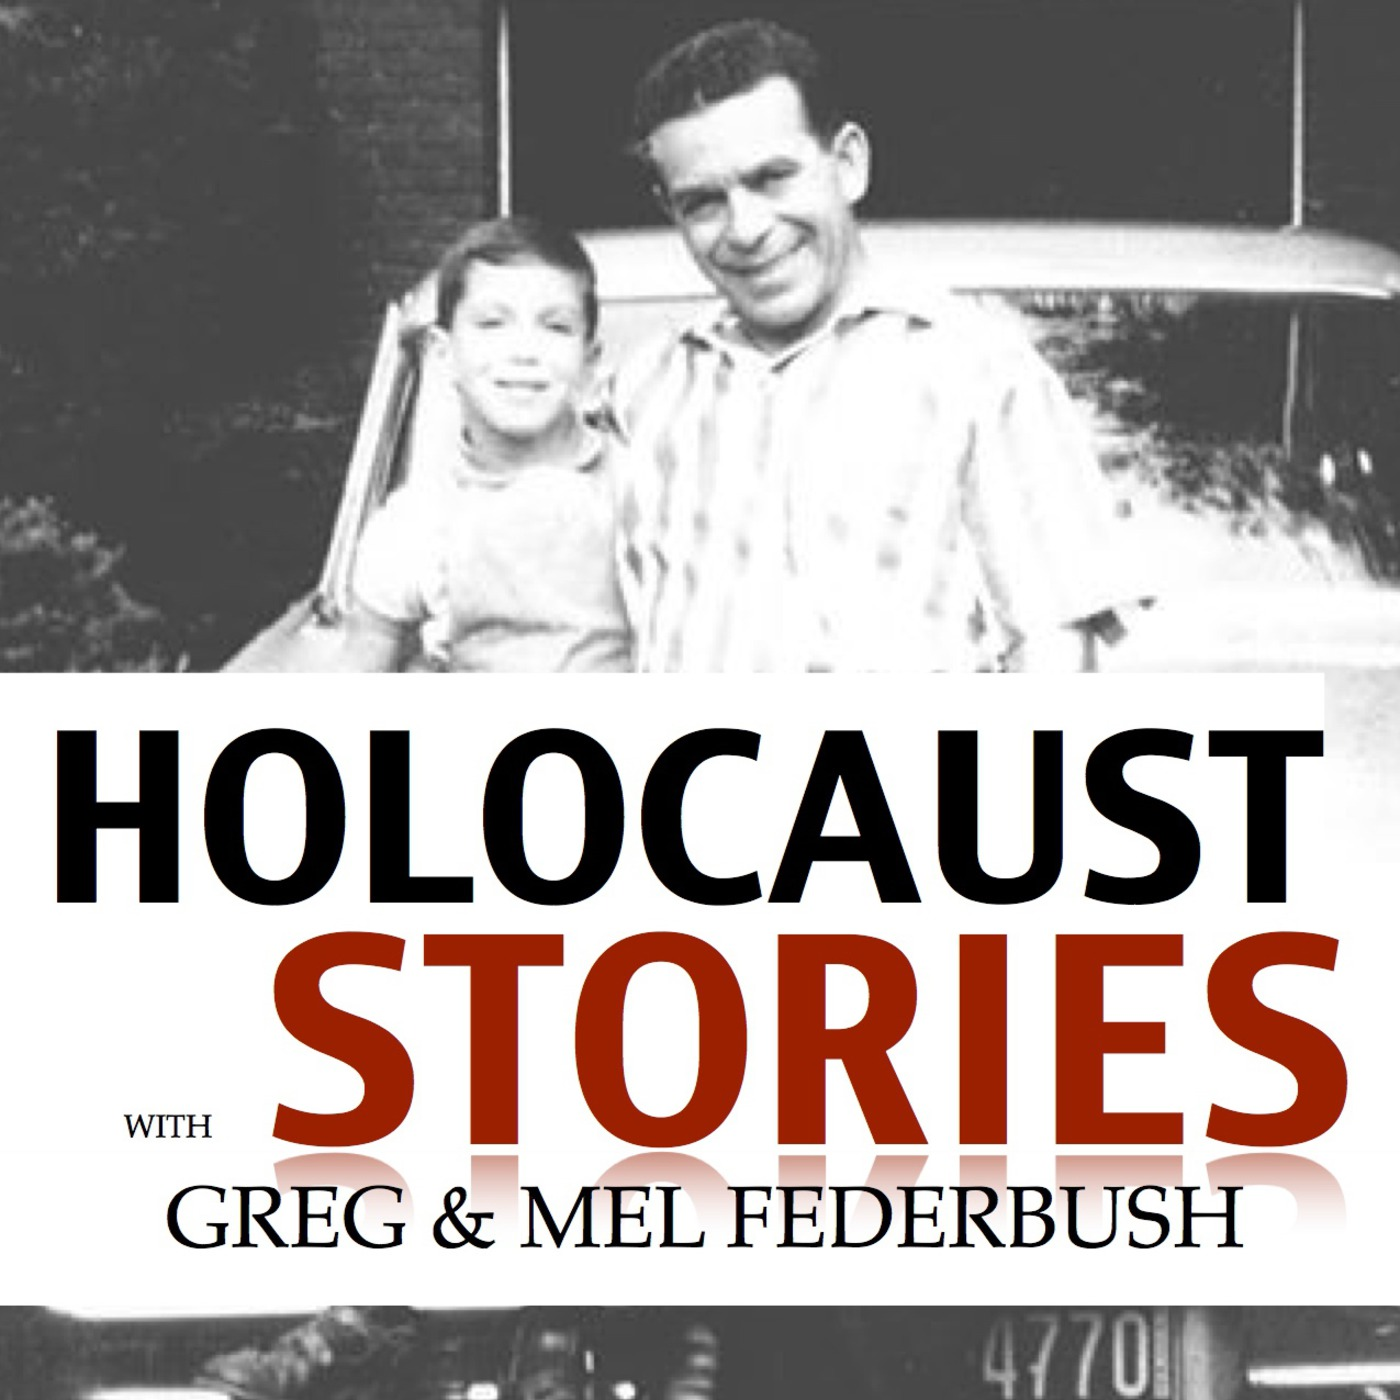 Melvin Federbush's Holocaust Survivor Stories